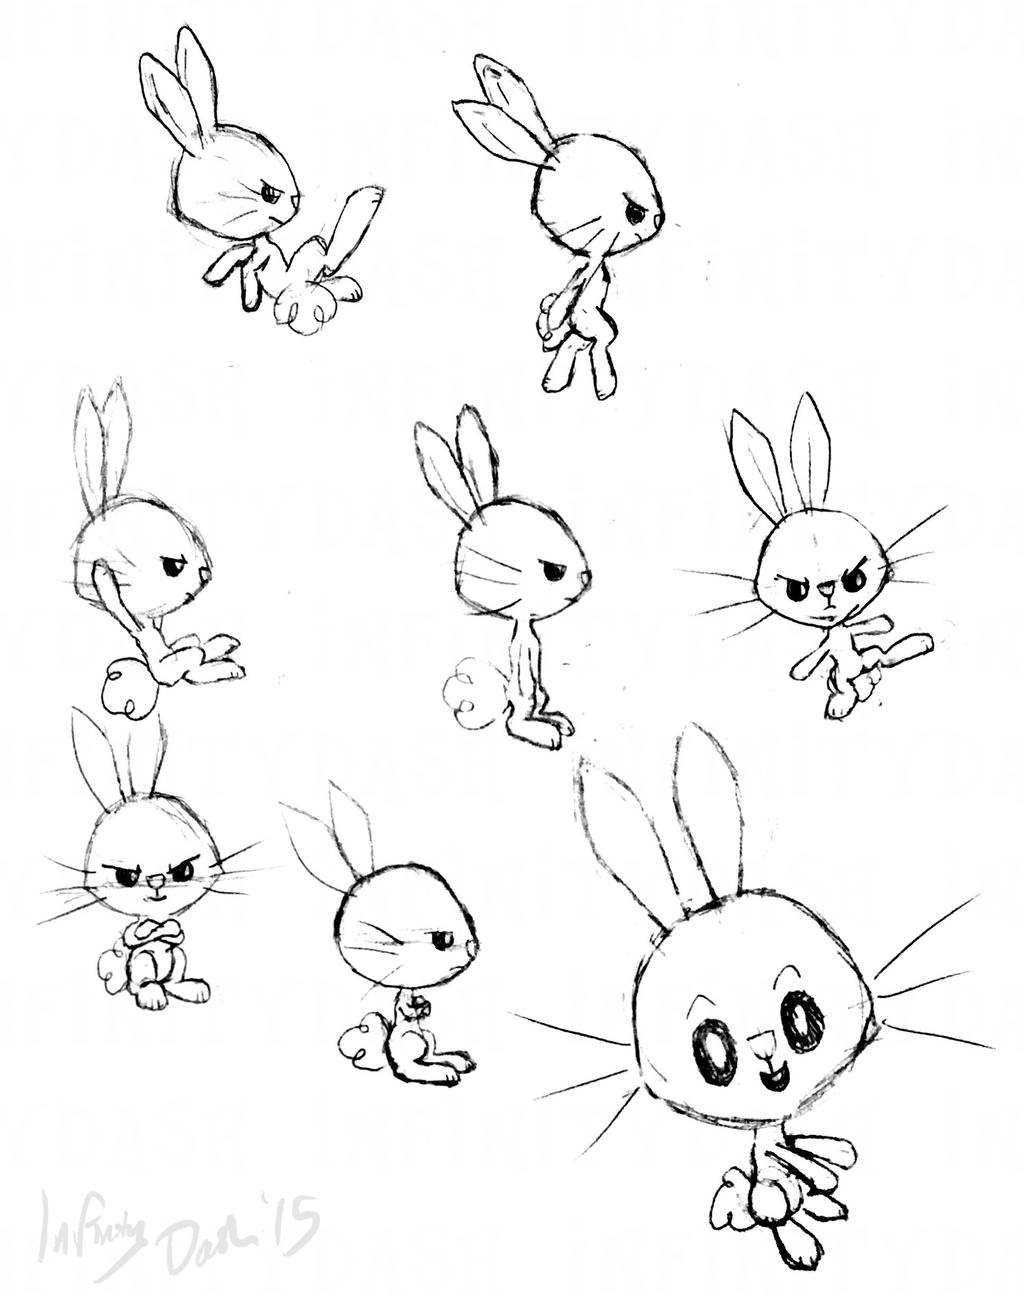 More Angel Bunny Poses (Sketch/Concept Art) by InfinityDash